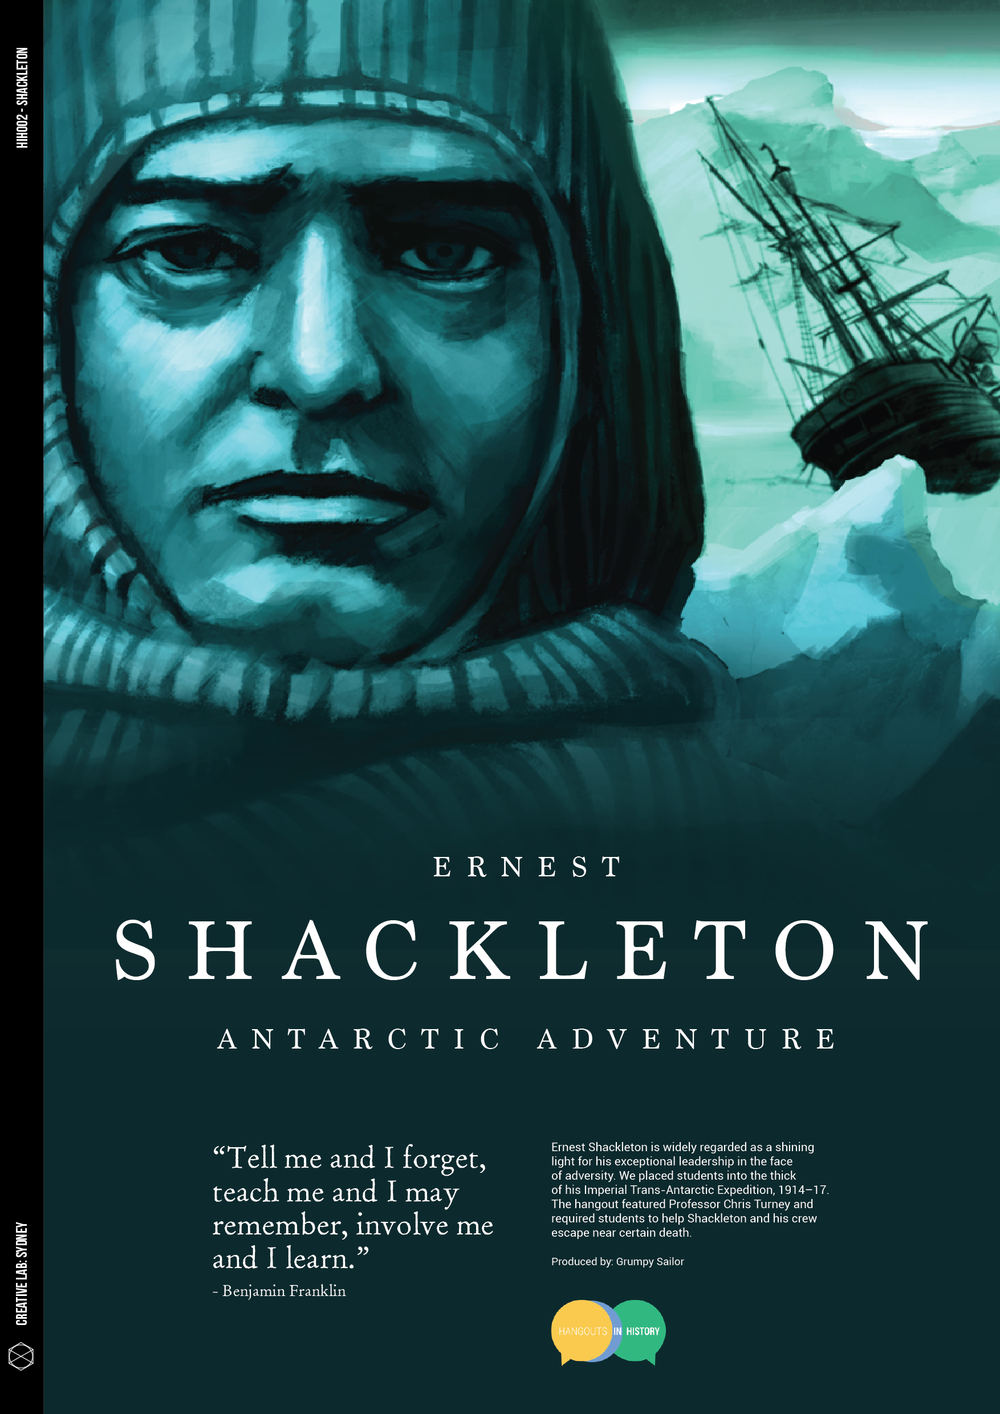 Shackleton_HIH_Poster_Portrait-01.png